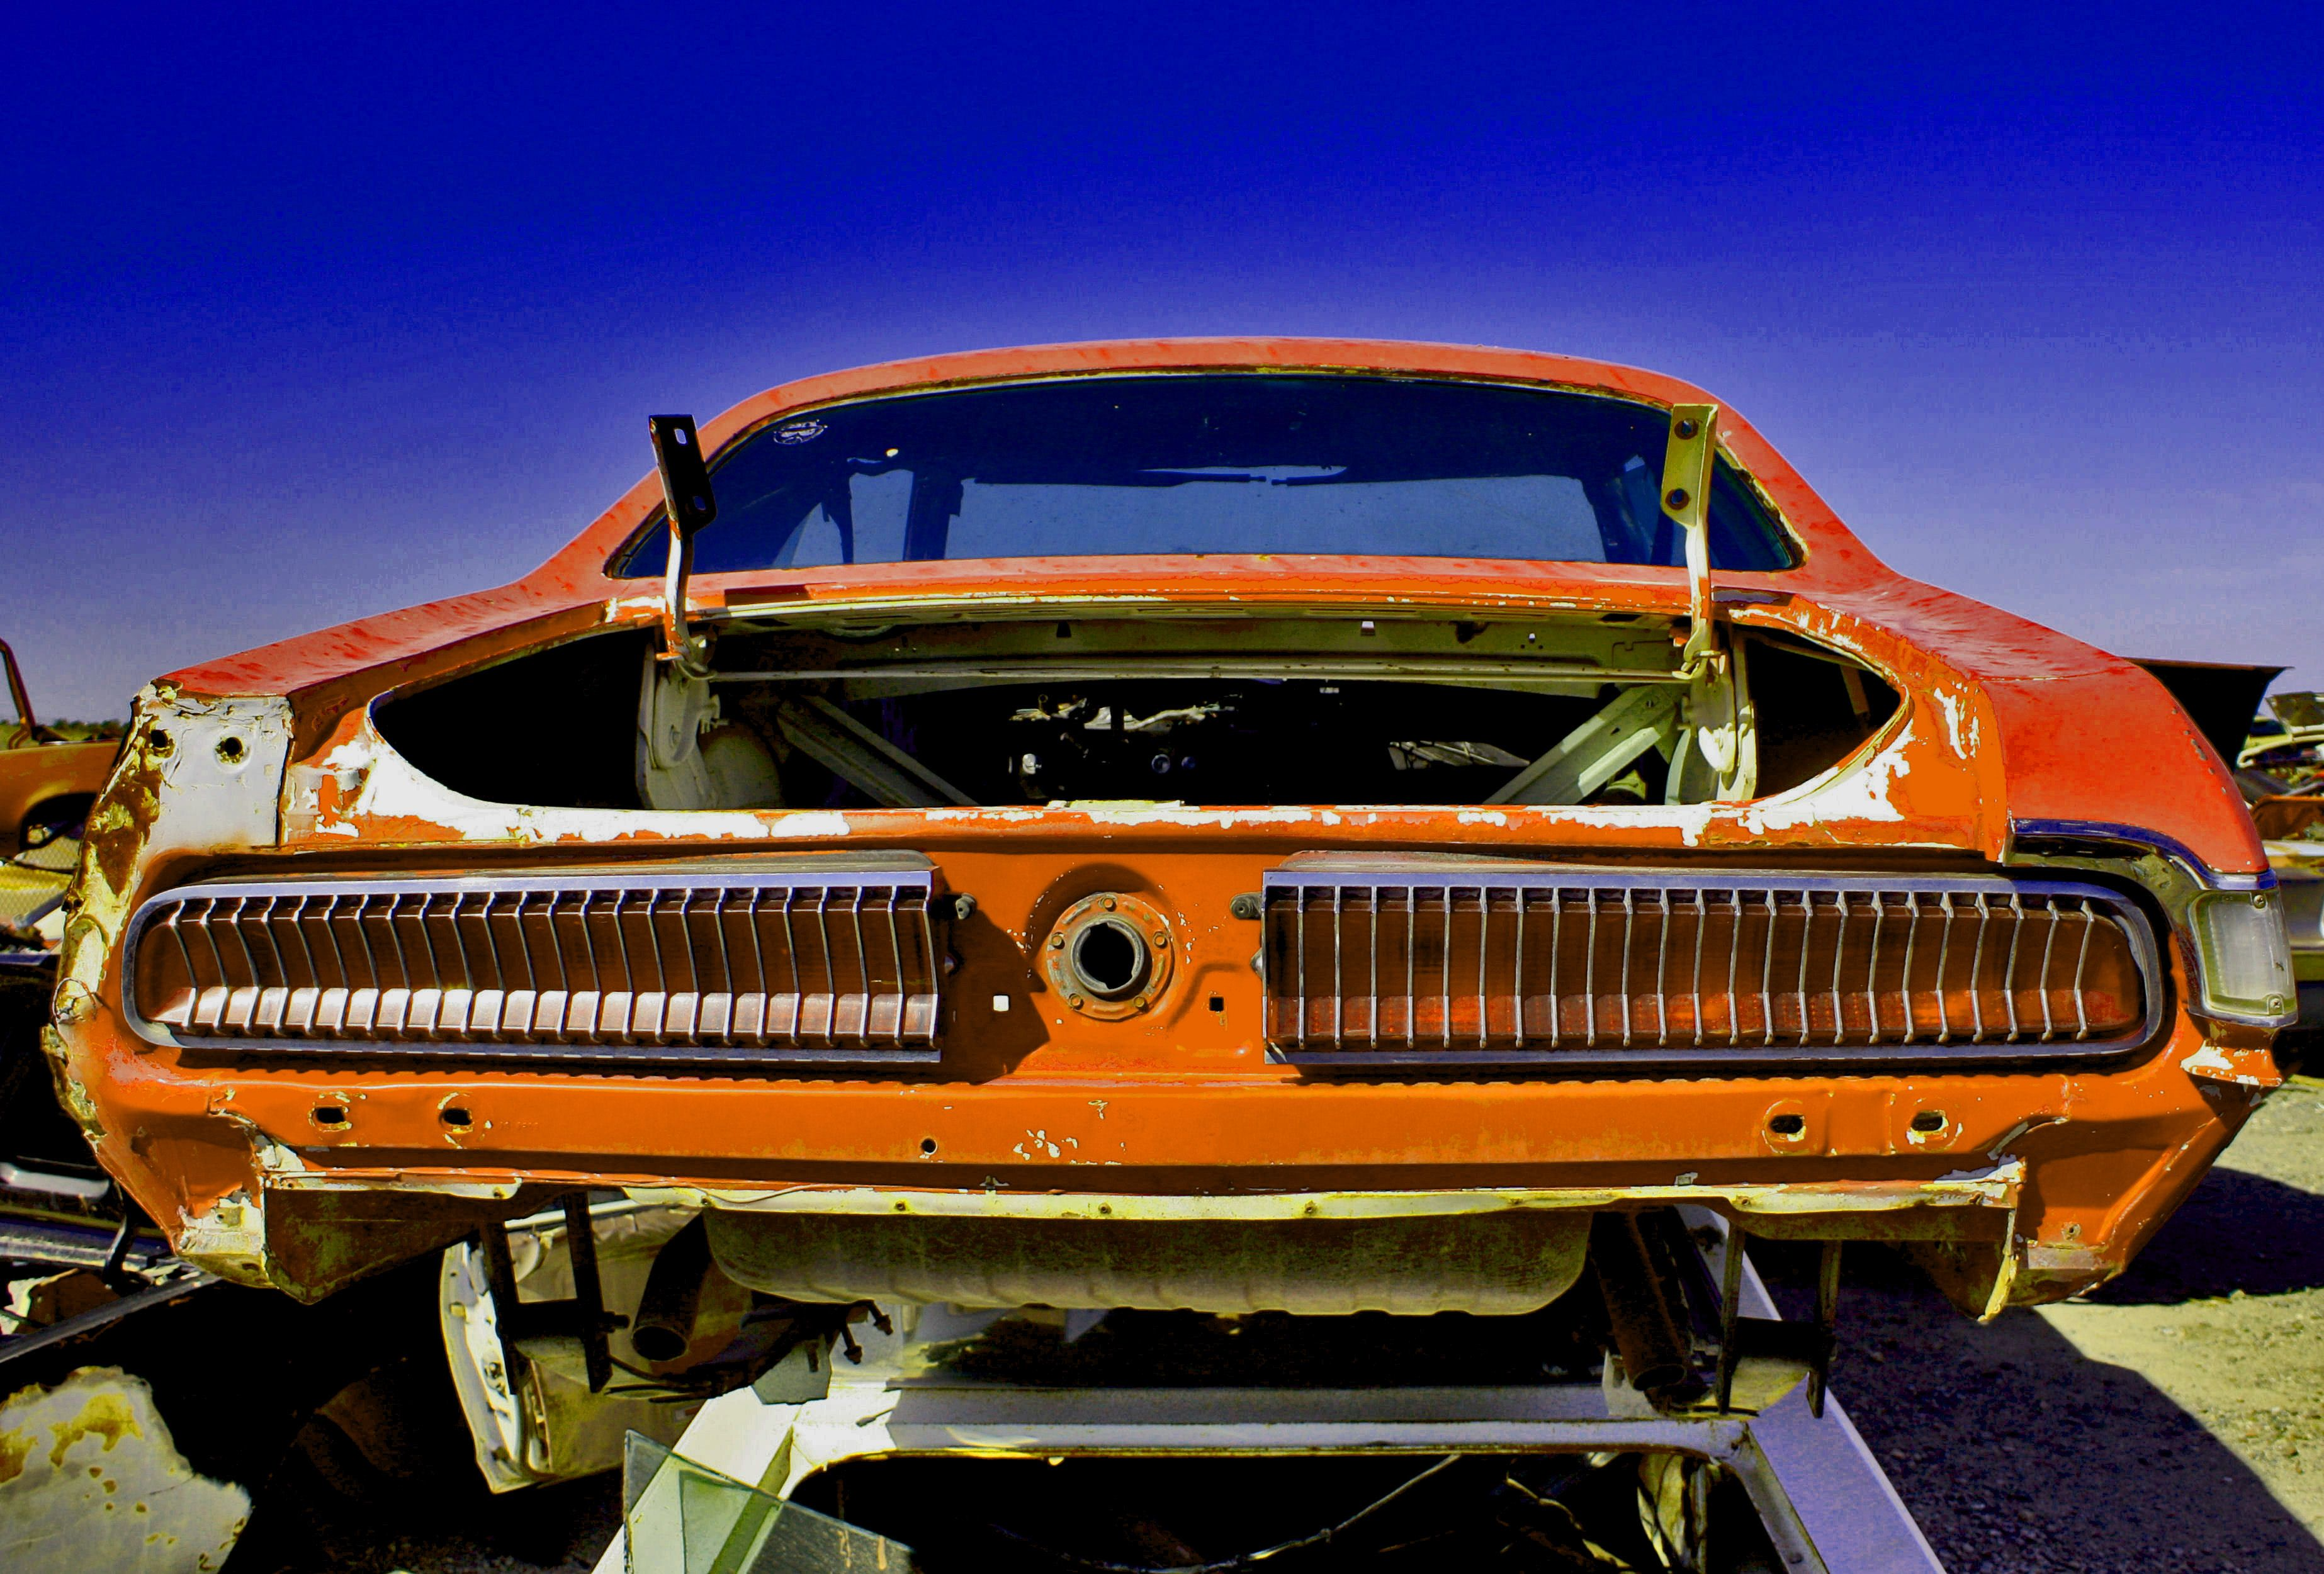 Mercury Cougar carcass at Desert Valley Auto Parts salvage